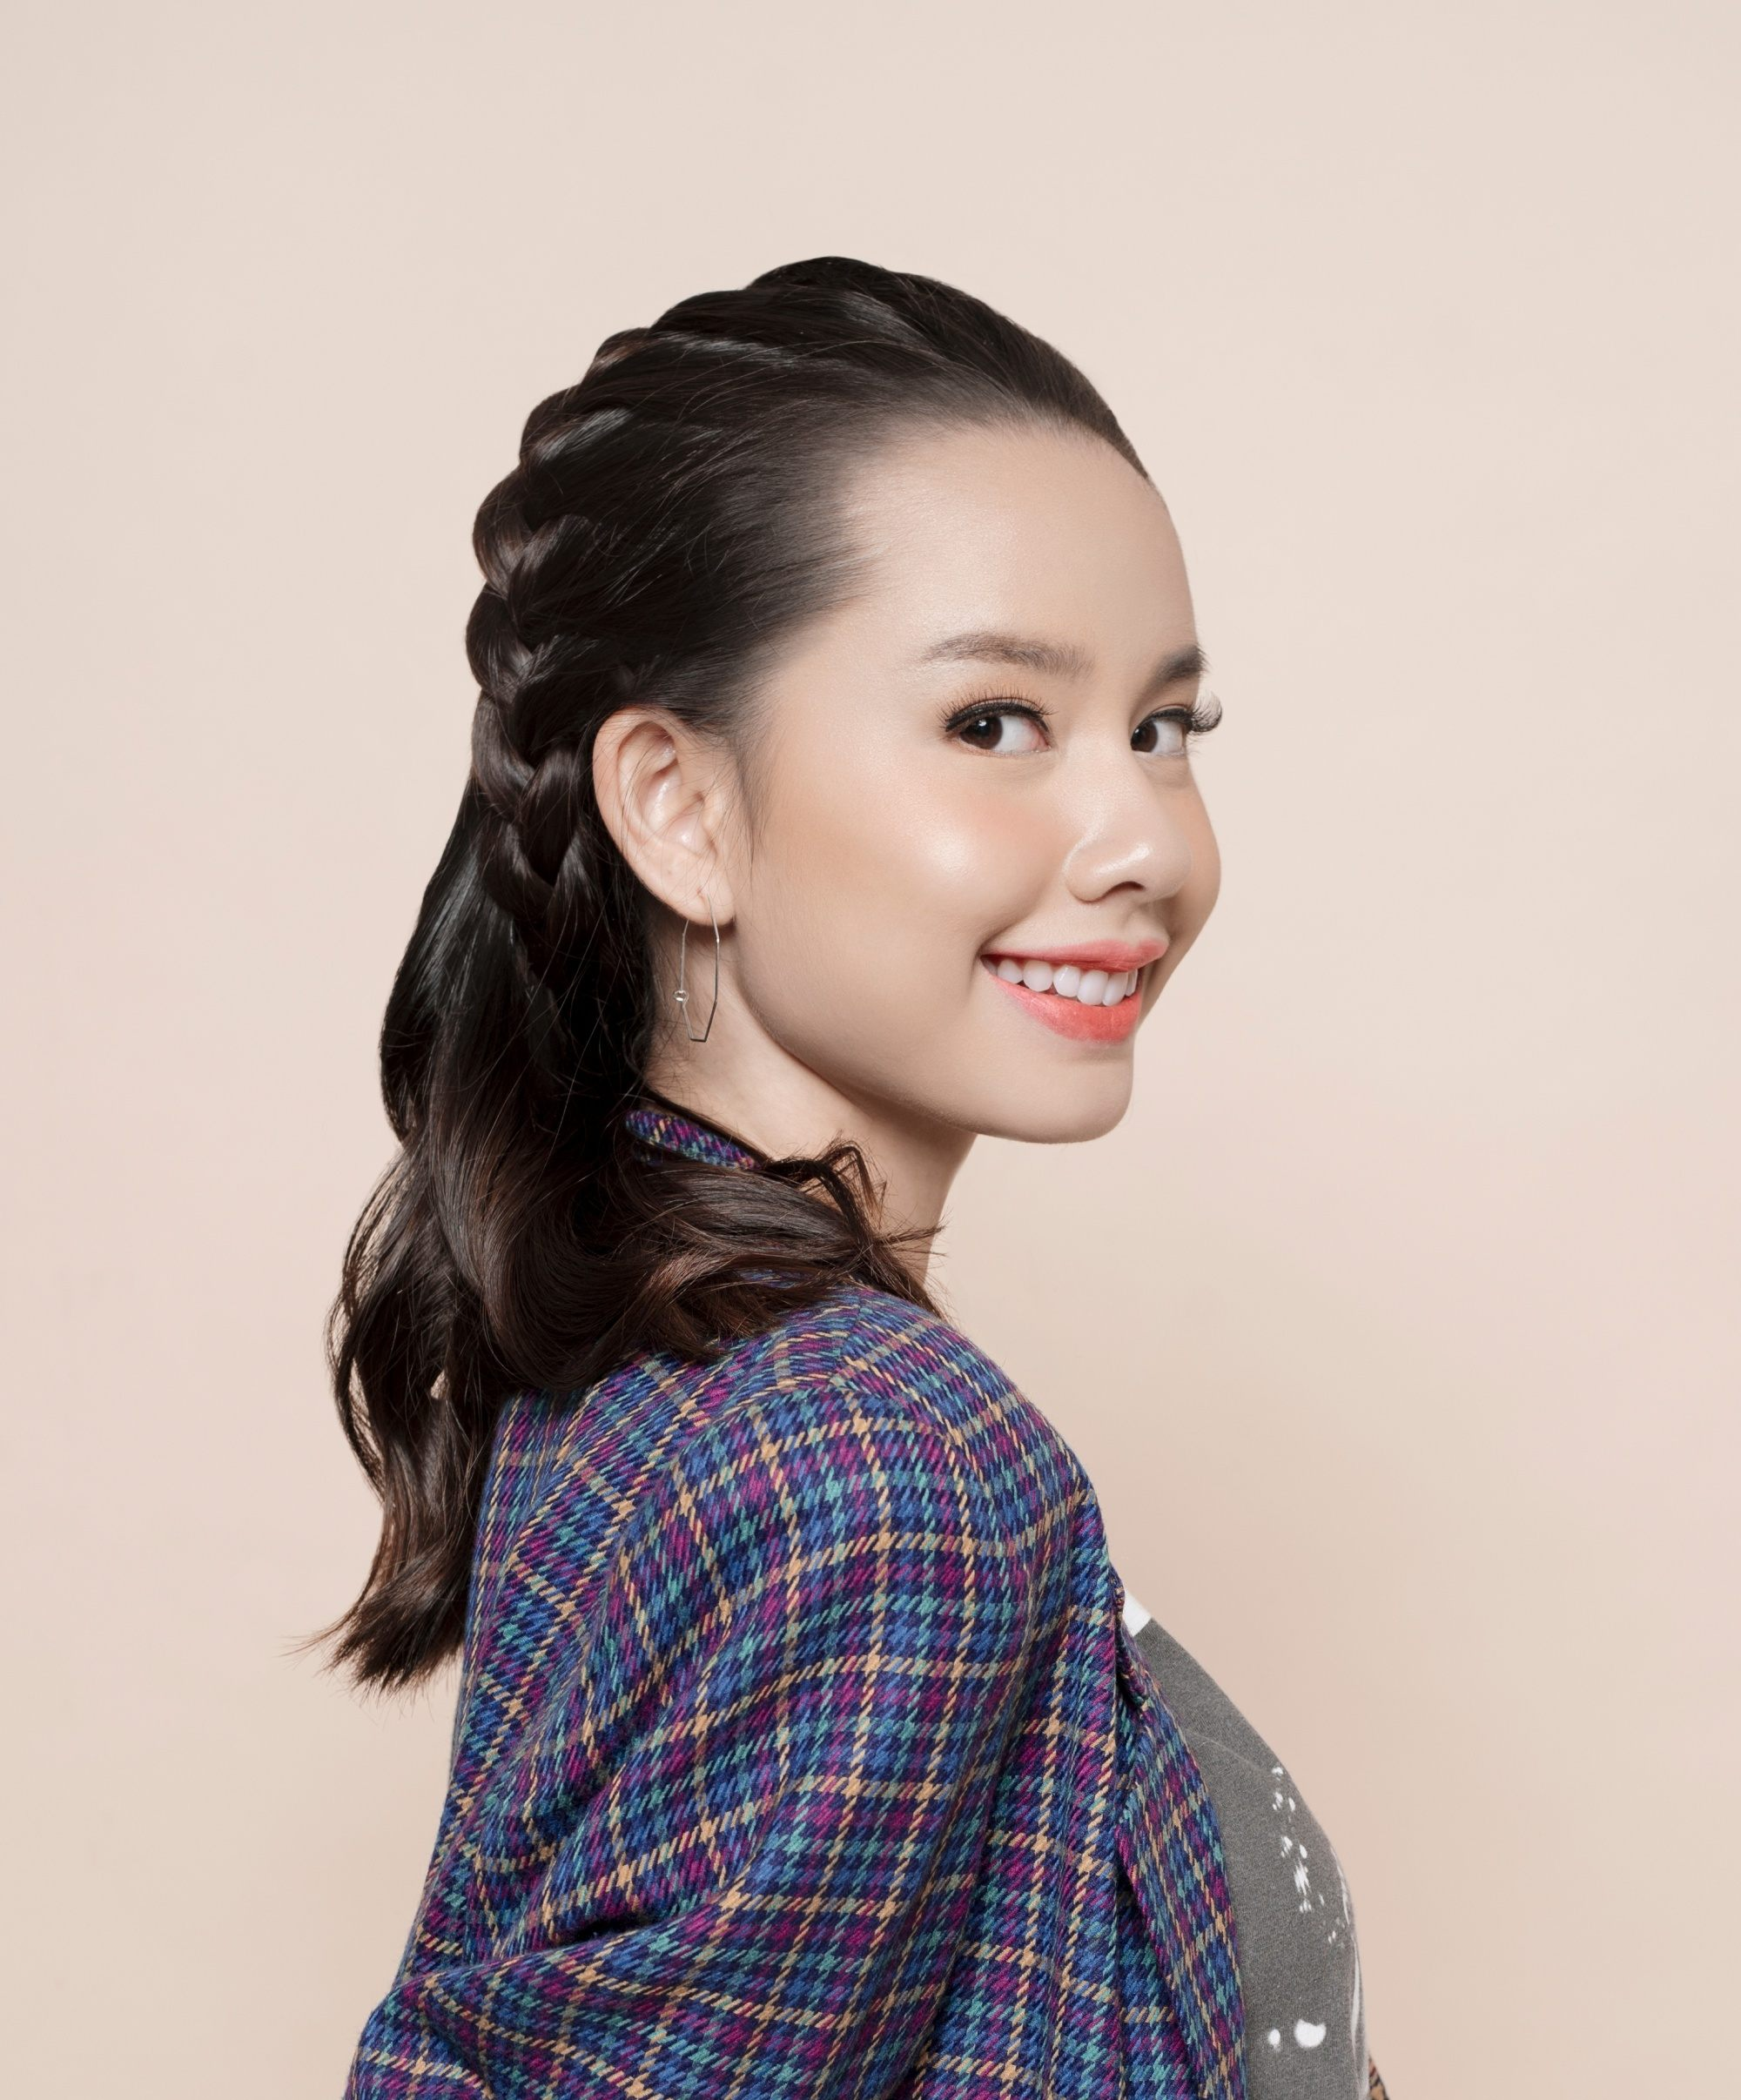 Summer braids: Asian woman with shoulder-length dark hair in a headband braid wearing a checkered polo and smiling